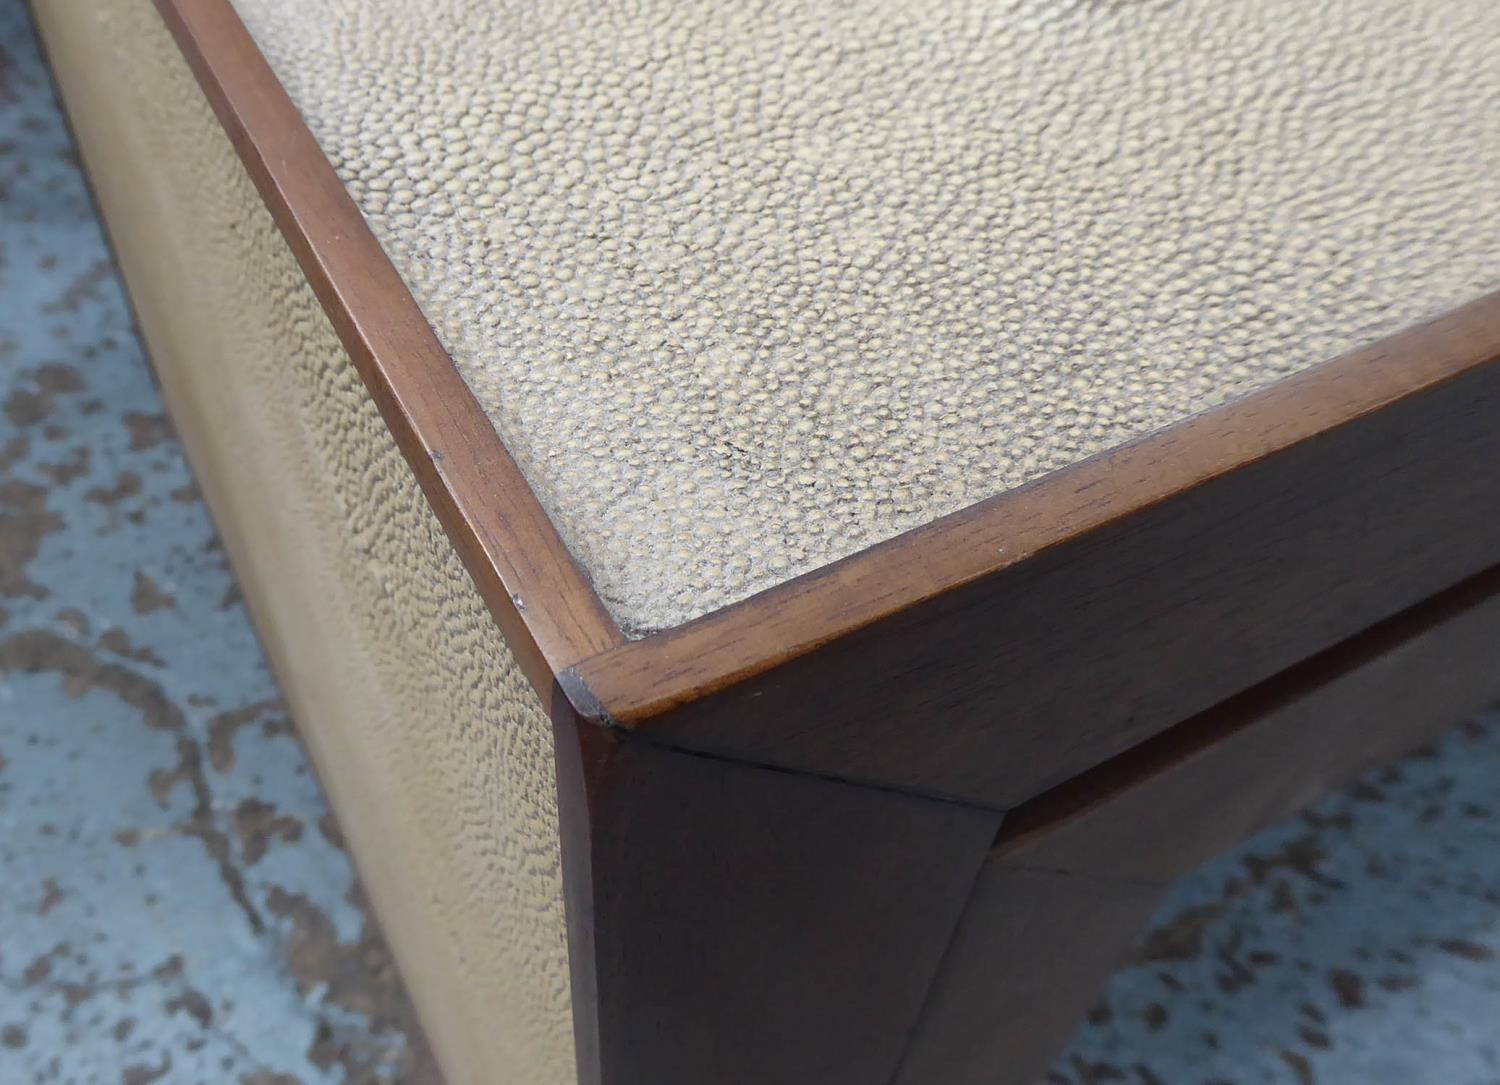 NEST OF TABLES, contemporary, faux shagreen finish, 137.5cm x 67cm x 49cm at largest. - Image 6 of 6